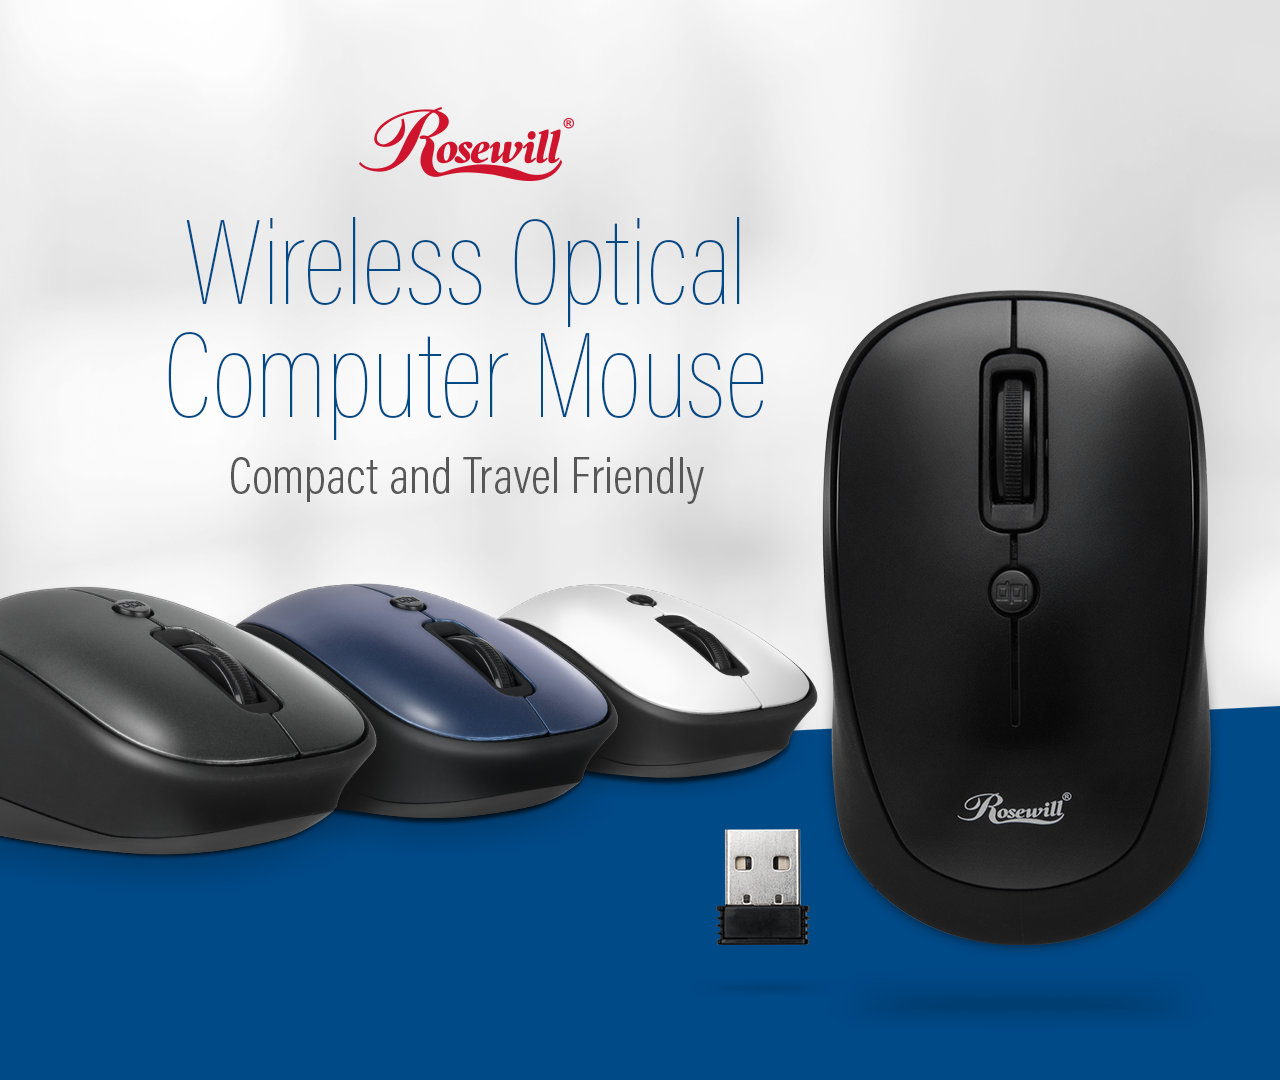 Rosewill Wireless Optical Computer Mouse